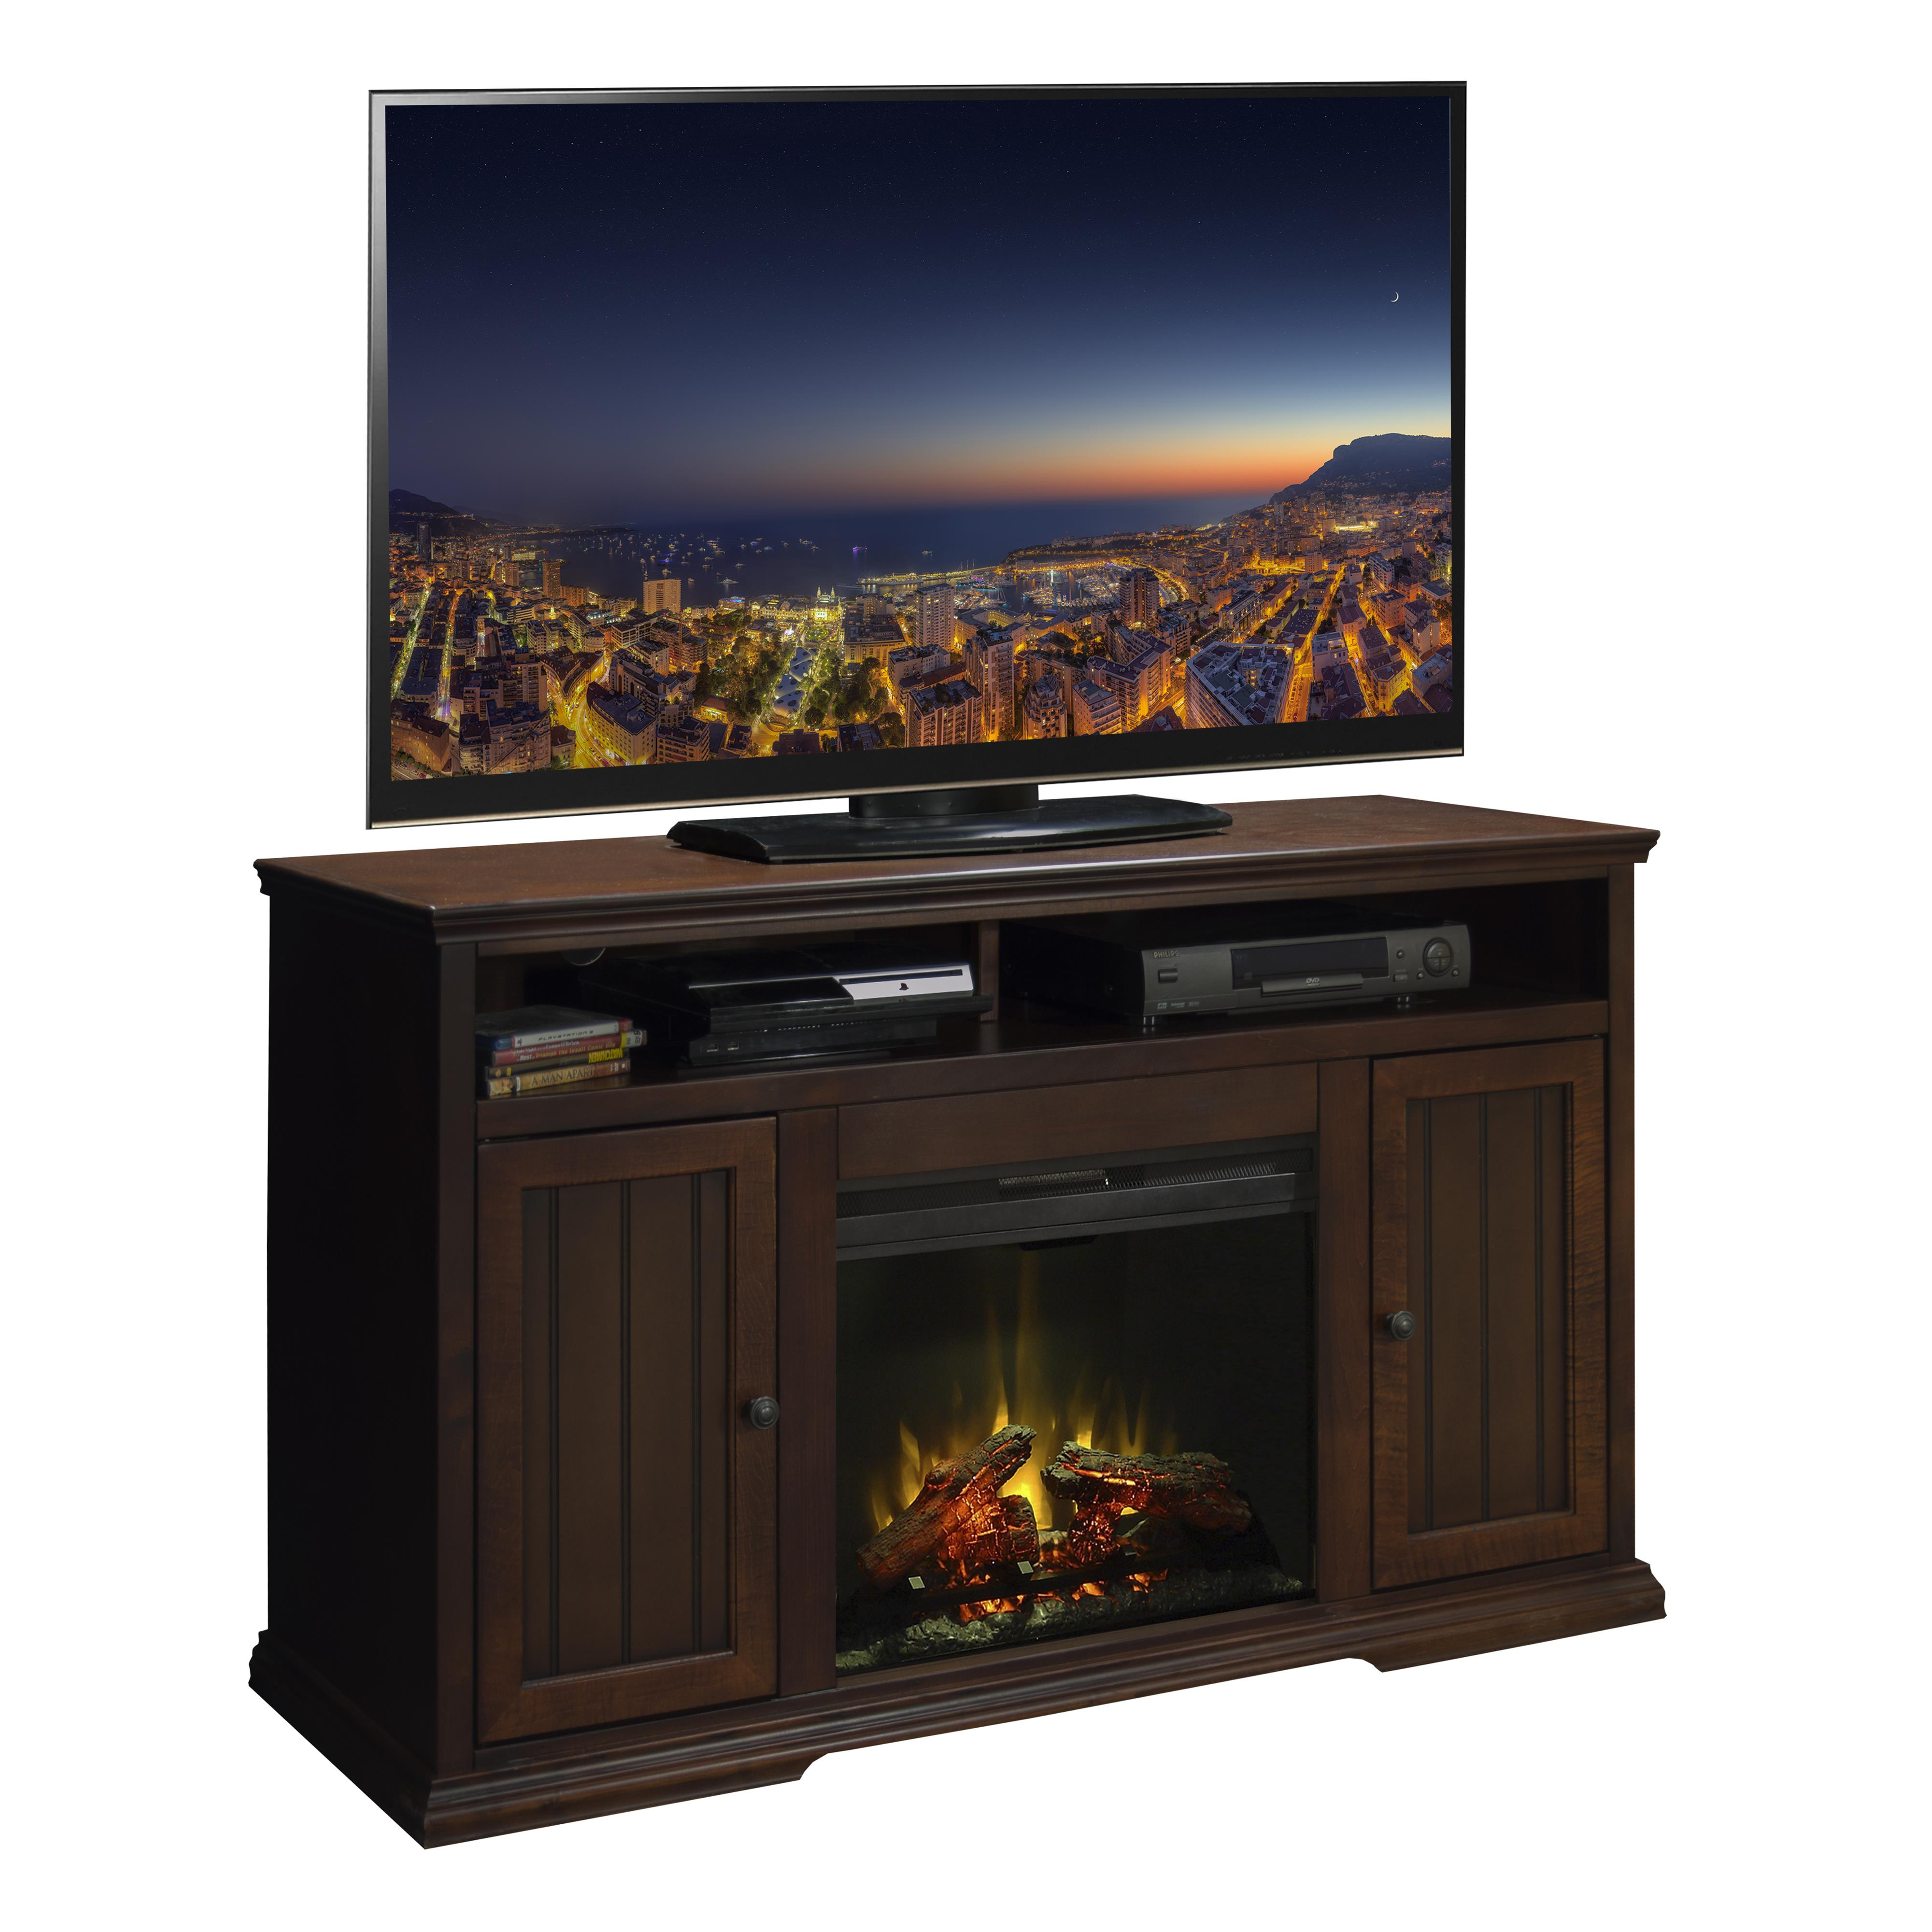 "Legends Furniture New Harbor 59"" Fireplace TV Console - Item Number: NH5304.KIT"